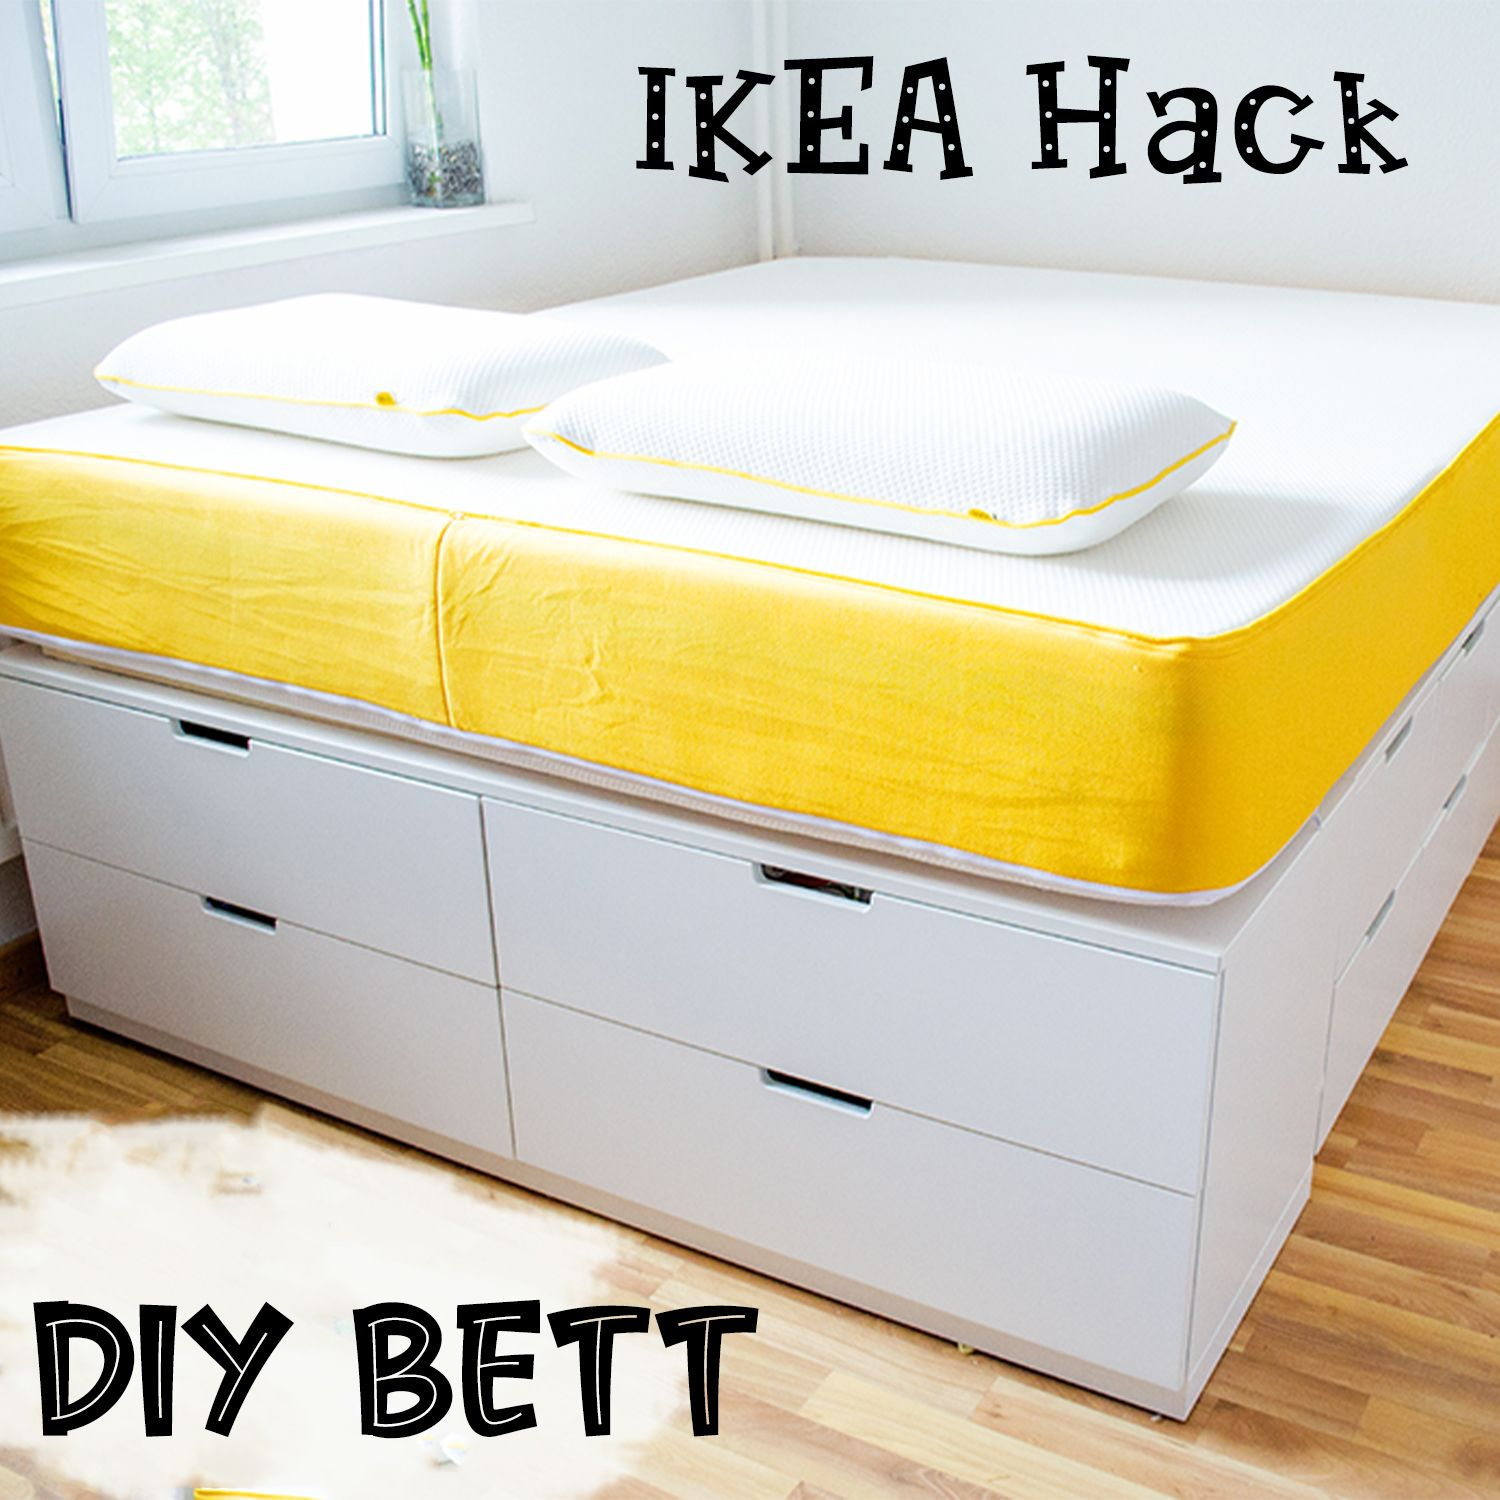 Photo of DIY Bett – IKEA Hack – Plateau Bett selber bauen   – Bett au